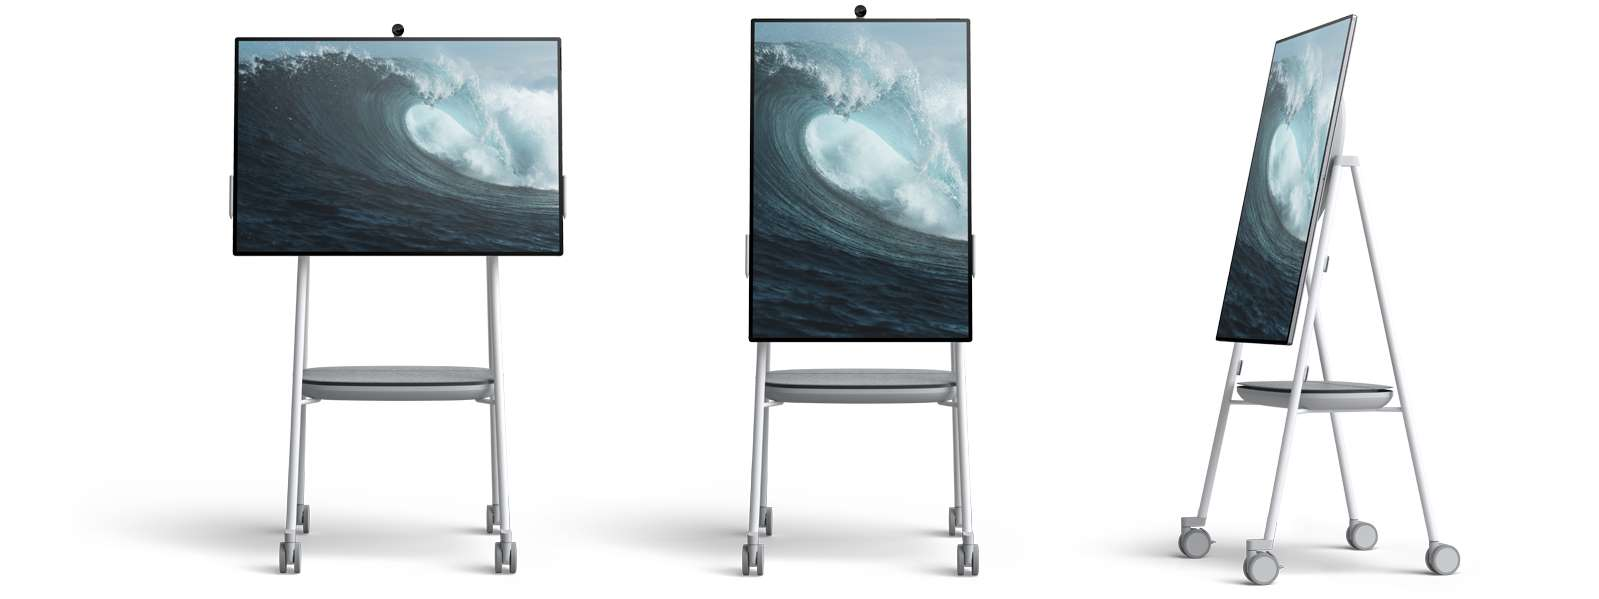 Surface Hub benefits